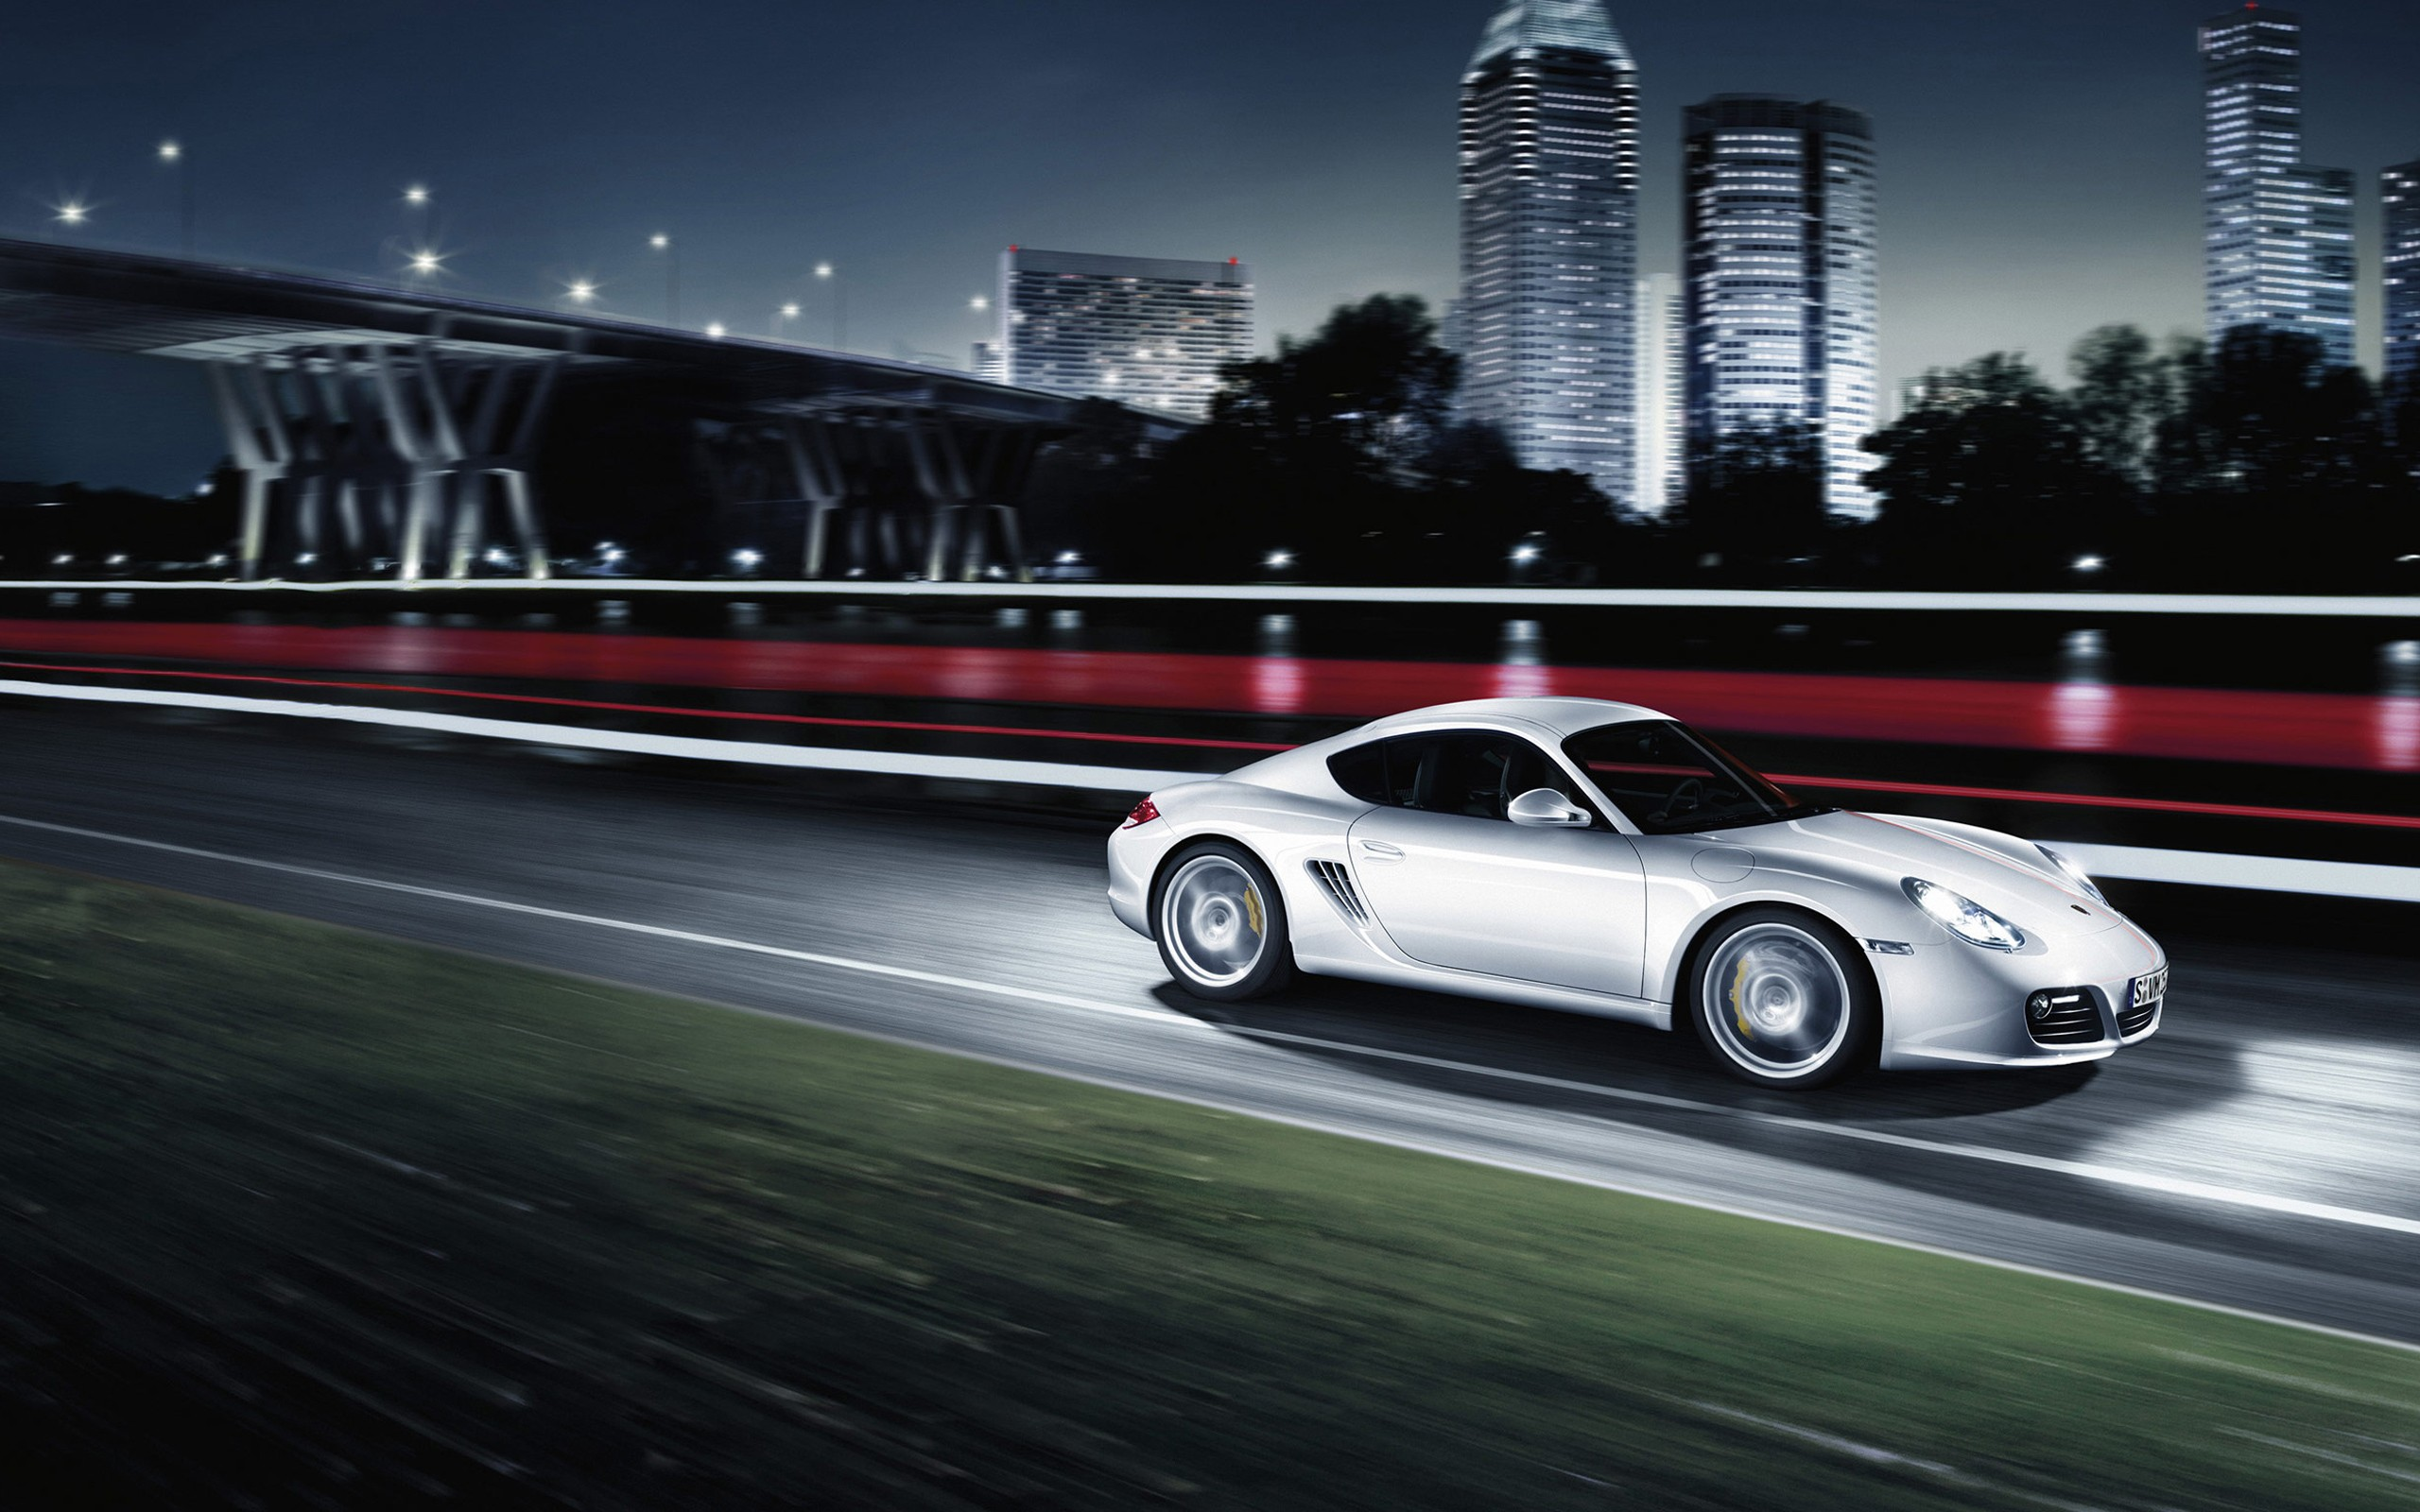 Porsche Wallpaper High Resolution 1162 Wallpaper